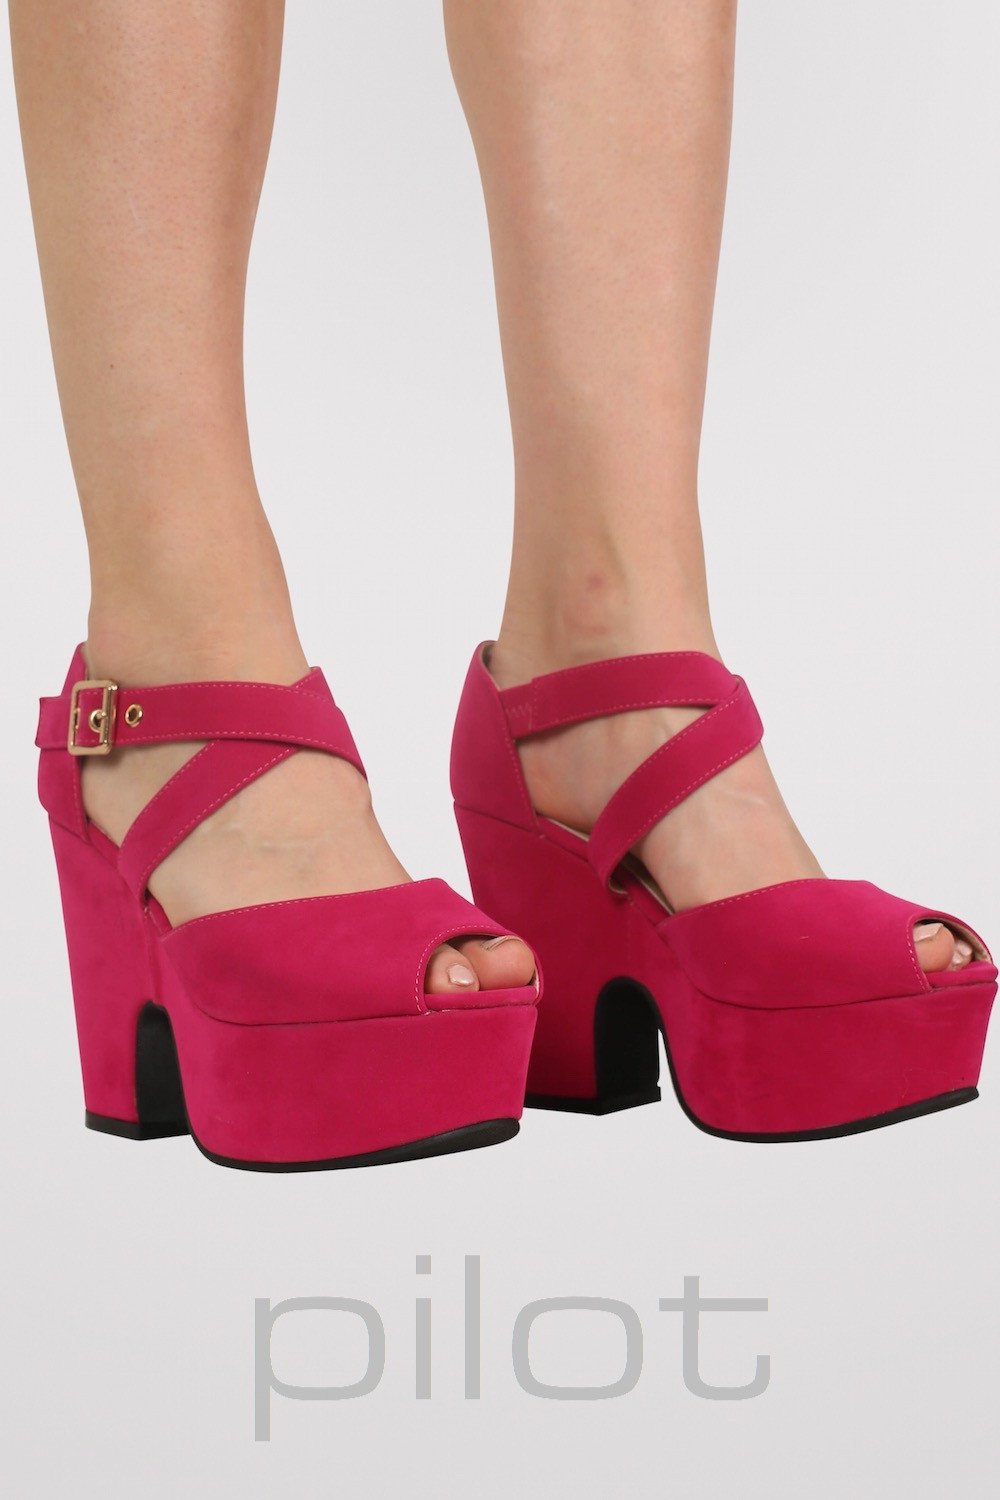 Cross Strap Low Demi Wedge Shoes in Pink MODEL FRONT